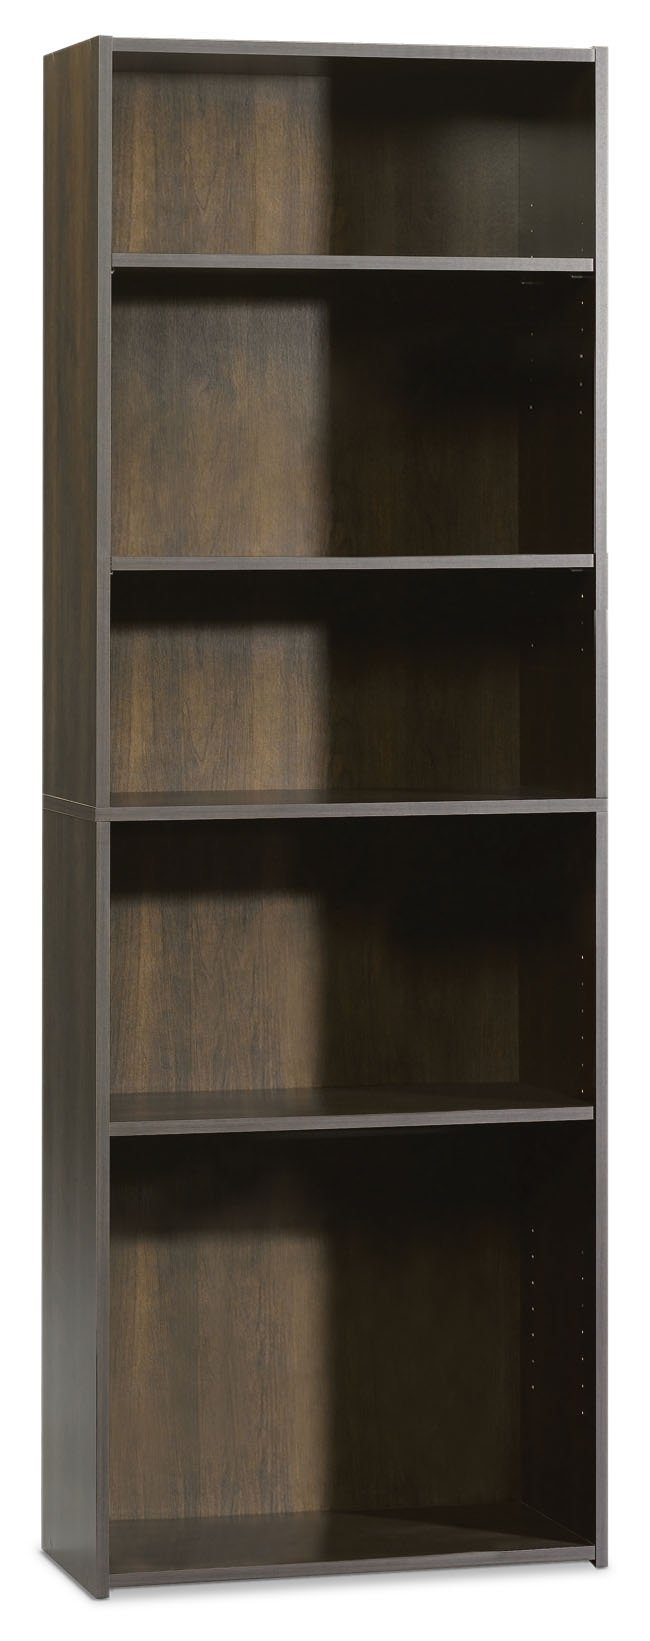 Currow 5-Shelf Bookcase